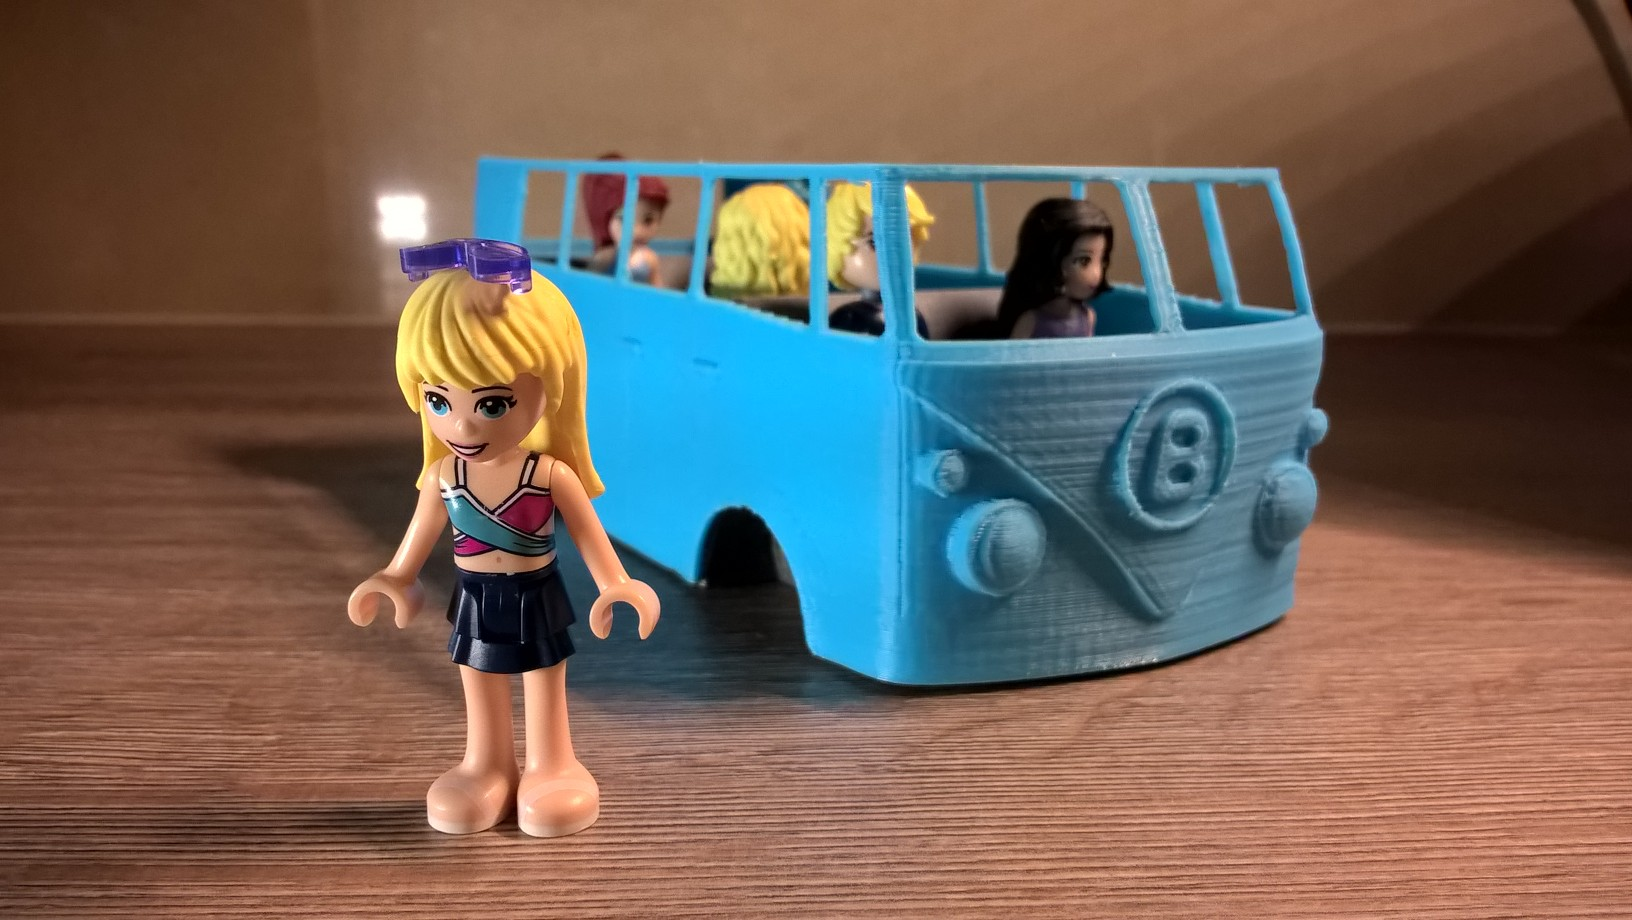 VW caravan for Lego friends characters by tomastnt_cz - Thingiverse